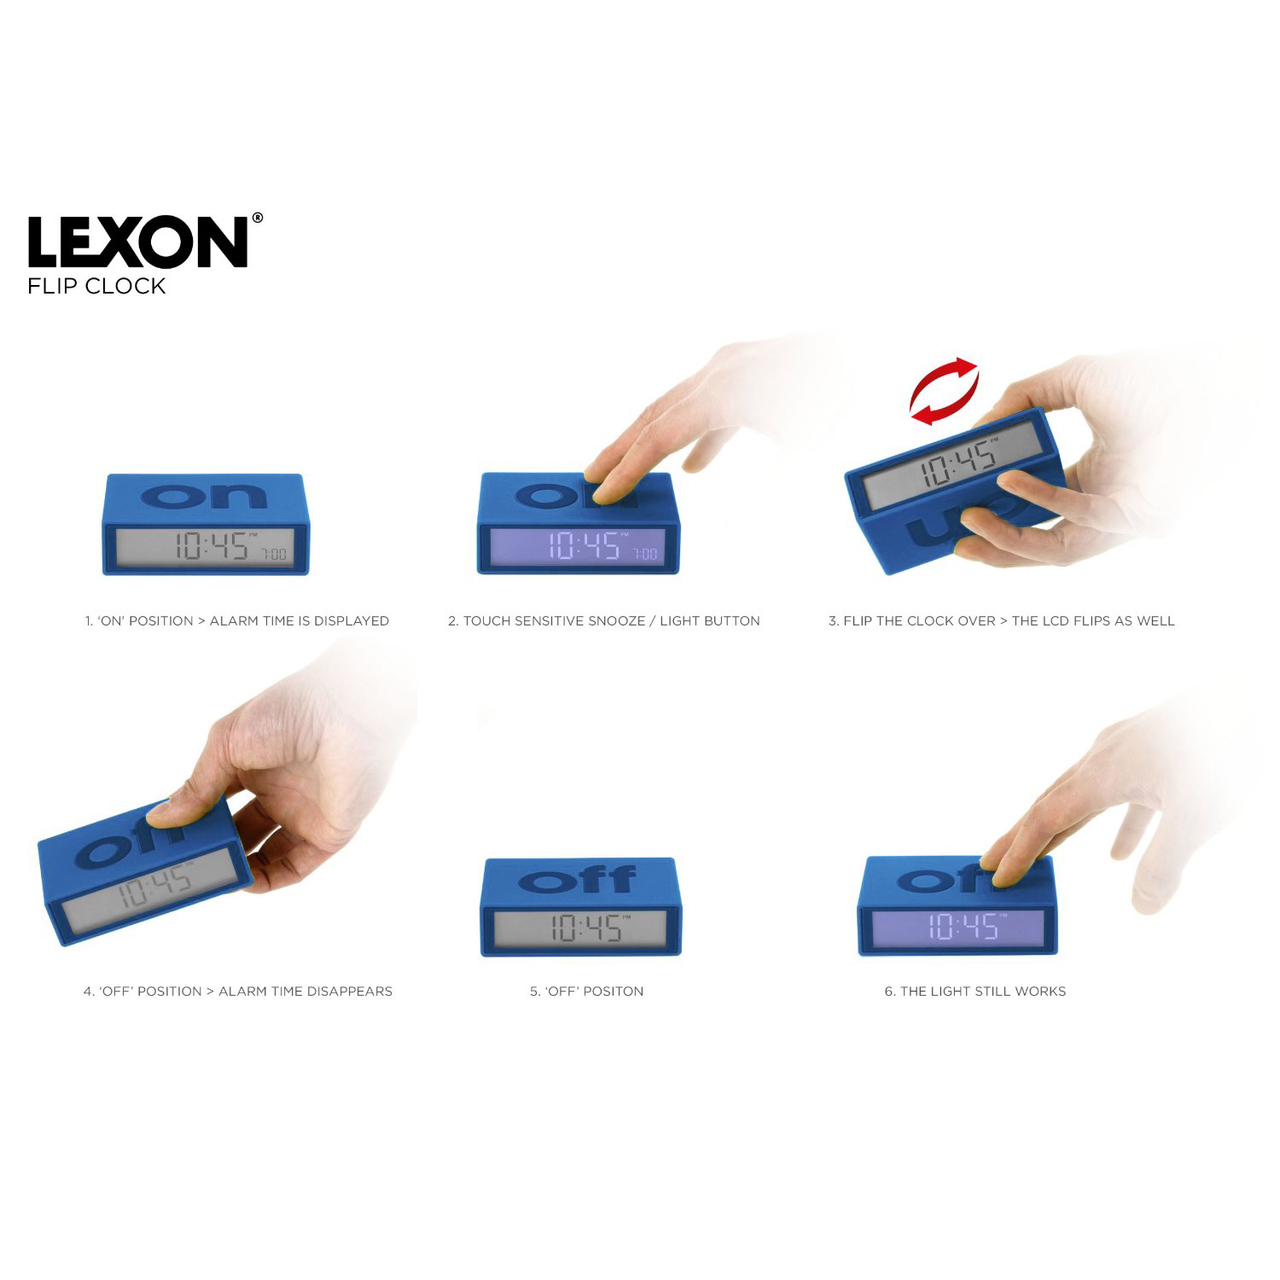 LEXON FLIP alarm clock (visual function description only)